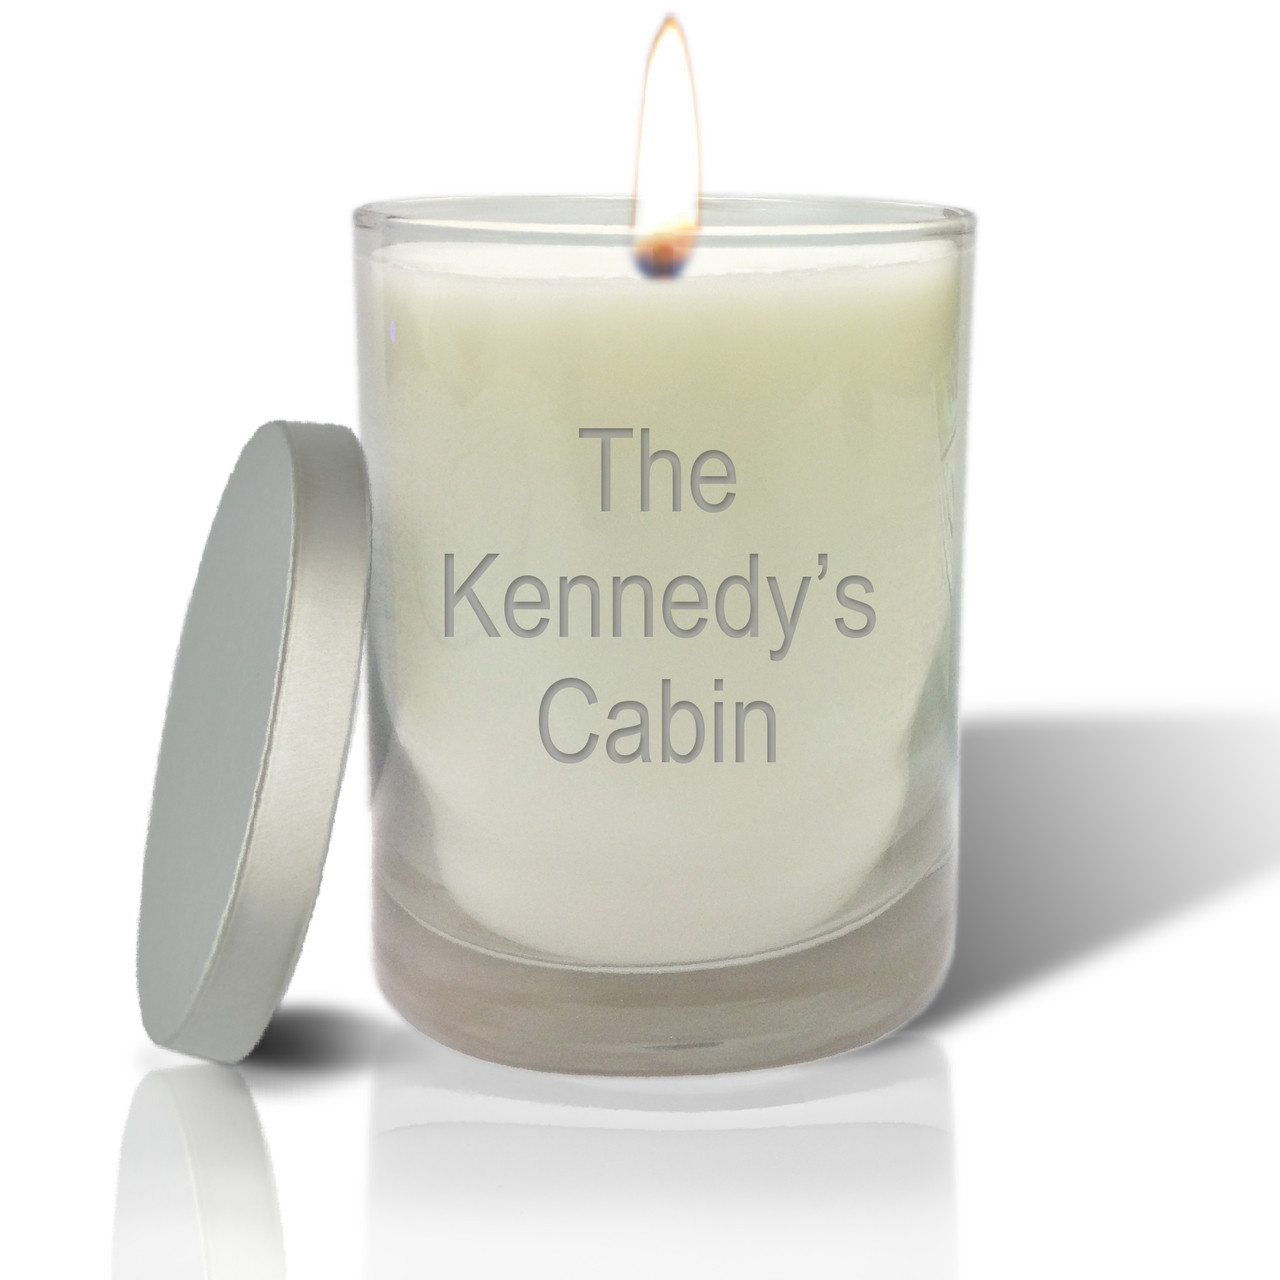 So, for candles in planes…